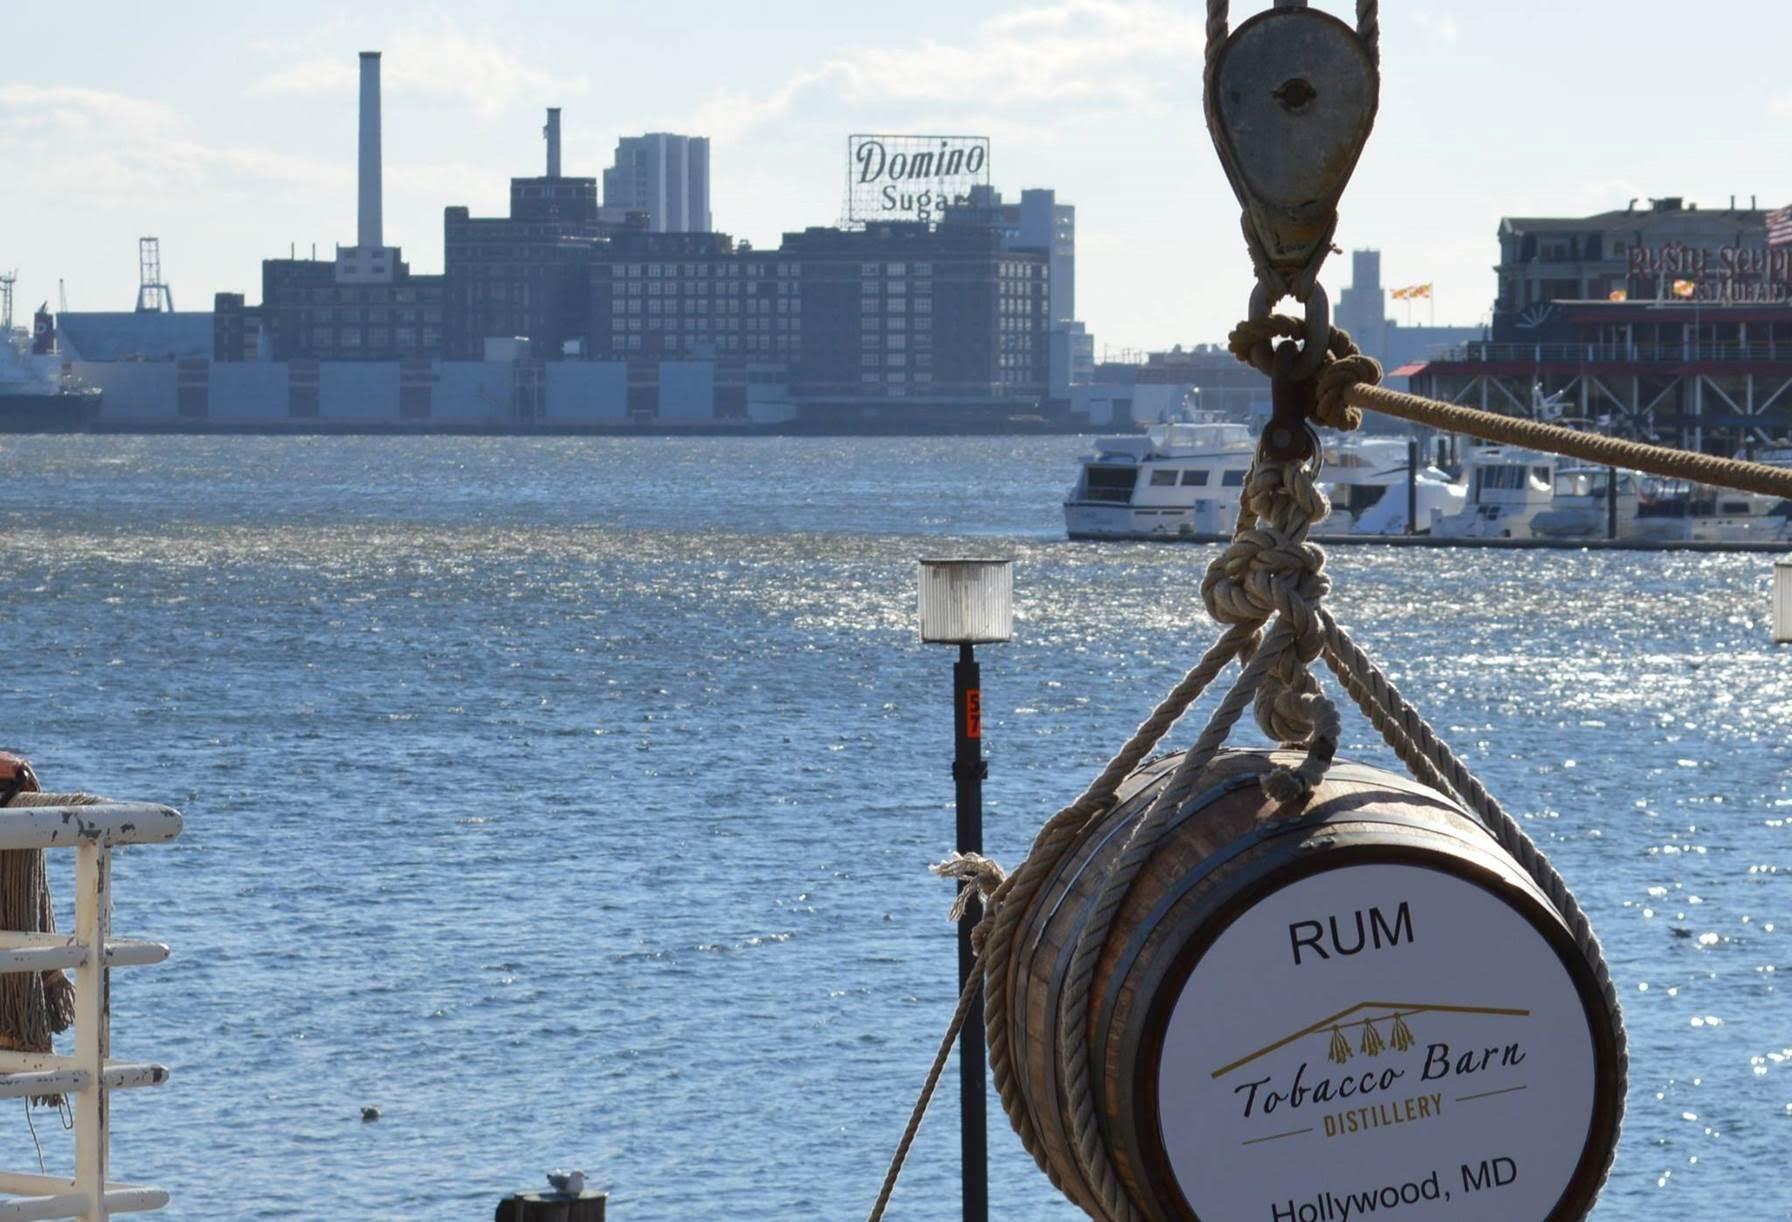 Down in the hold of the historic U.S.S. Constellation in Baltimore's Inner Harbor are four barrels of rum that have been aging on the ship for a year.  (Courtesy Tobacco Farm Distillery)